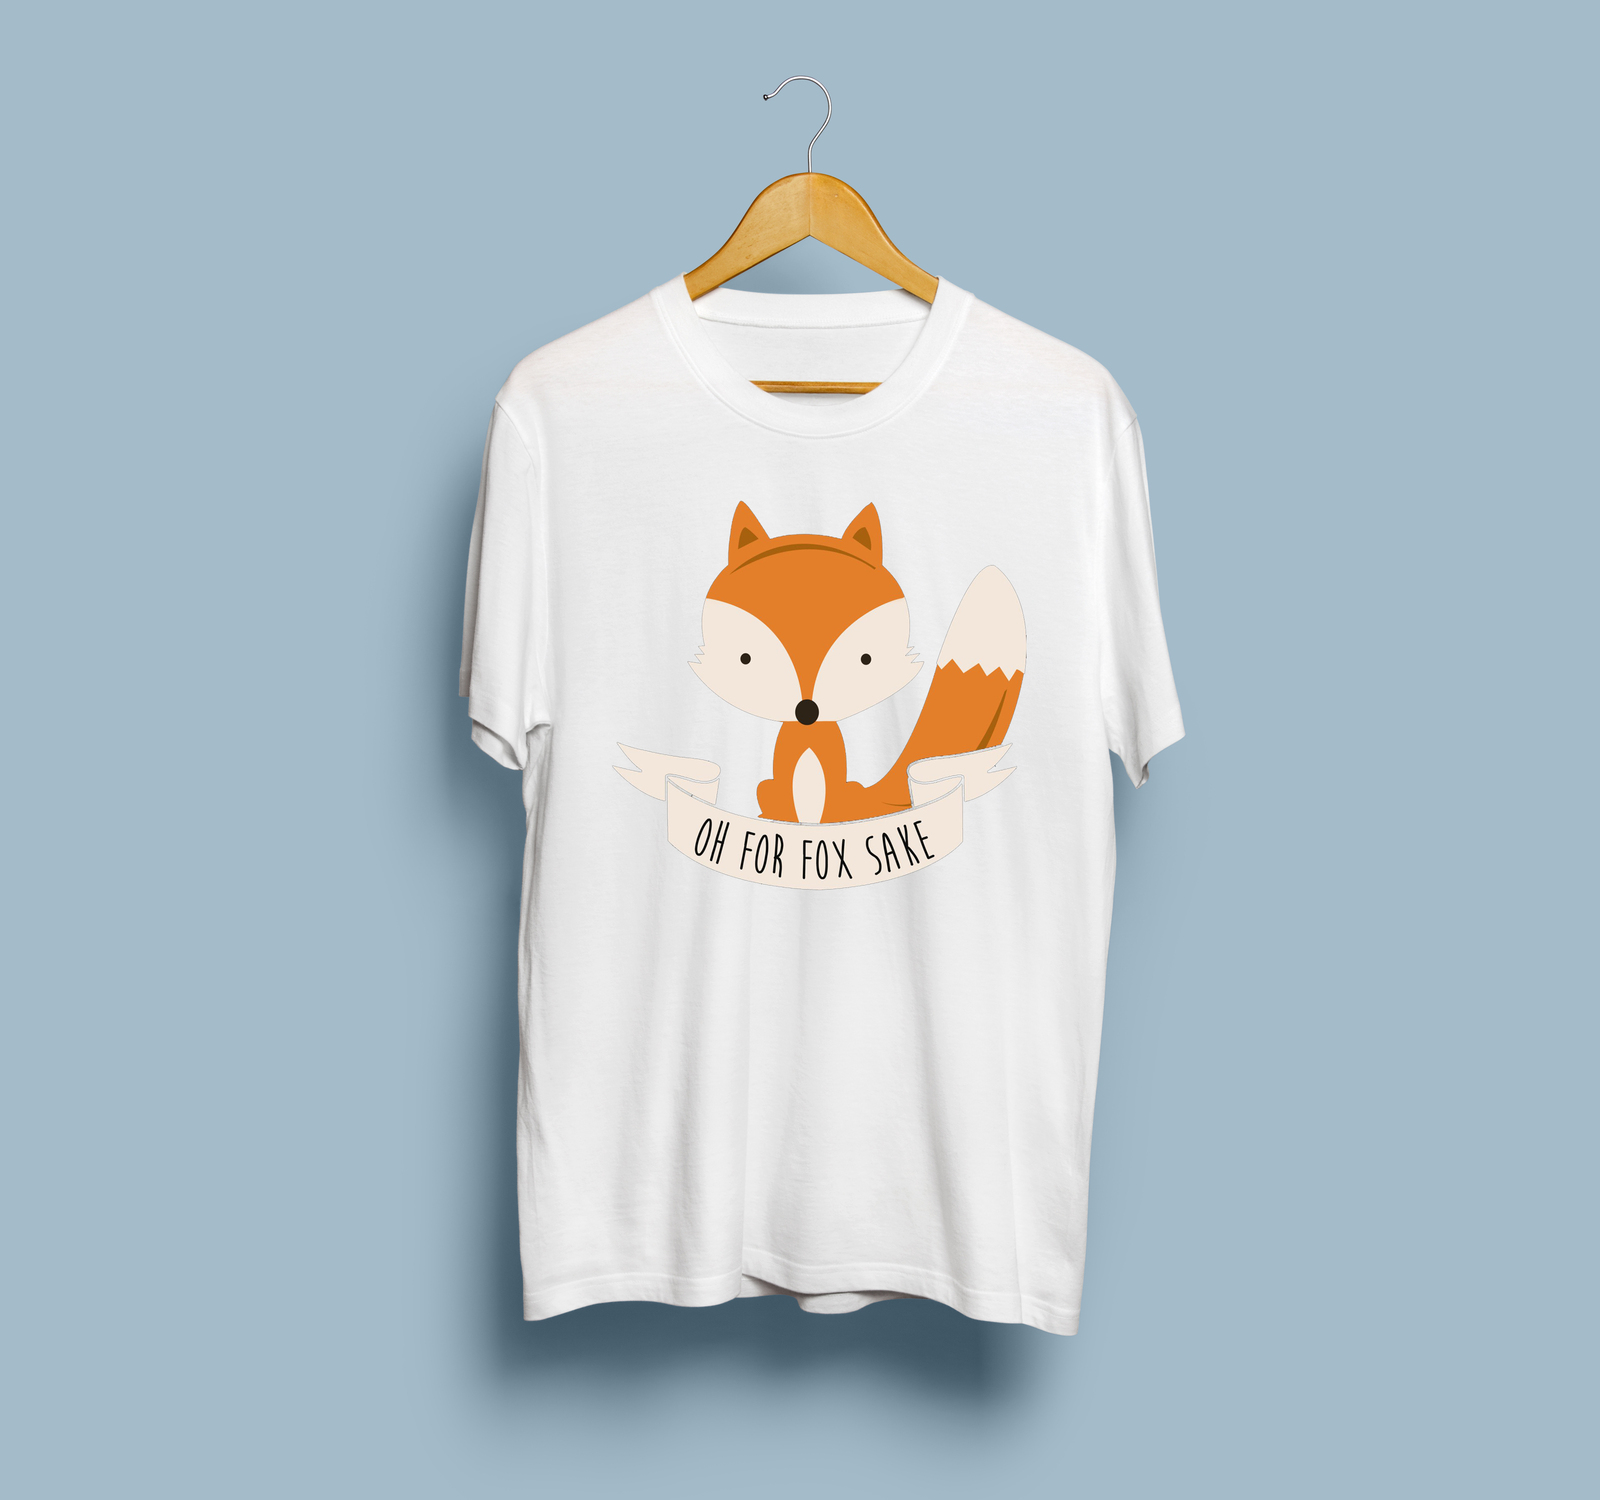 HOT SALE Oh For Fox Sake Gildan T-shirt Size S To 2XL